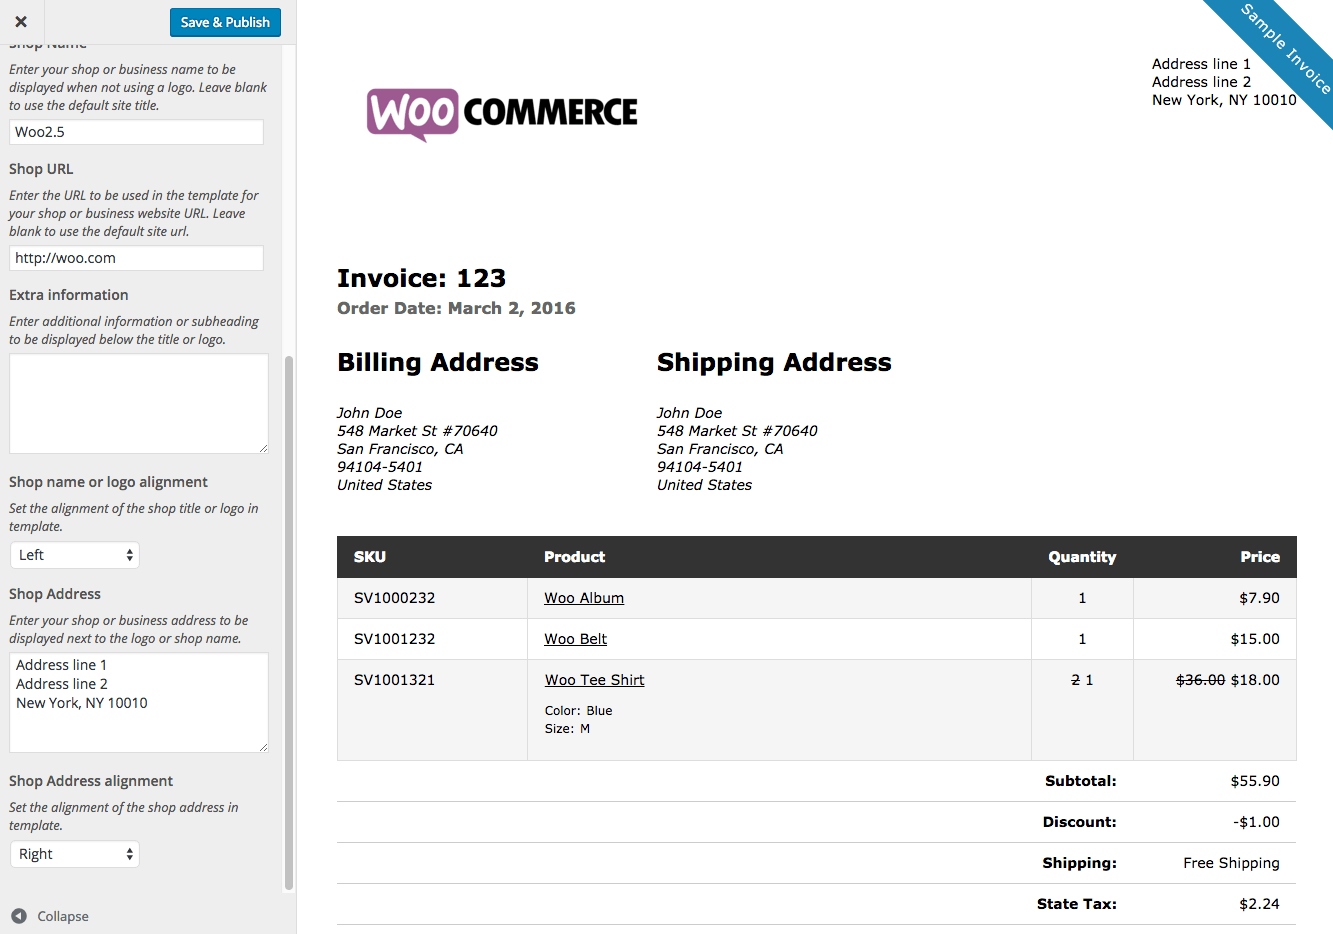 Usdgus  Fascinating Print Invoices Amp Packing Lists  Woocommerce With Foxy Woocommerce Print Invoices  Packing Lists Customizer With Cute Landlord Receipt Template Also Coupon And Receipt Organizer In Addition Receipt Of Letter And Receipt And Payment As Well As Print Your Own Receipts Additionally Star Receipt Printer For Ipad From Woocommercecom With Usdgus  Foxy Print Invoices Amp Packing Lists  Woocommerce With Cute Woocommerce Print Invoices  Packing Lists Customizer And Fascinating Landlord Receipt Template Also Coupon And Receipt Organizer In Addition Receipt Of Letter From Woocommercecom